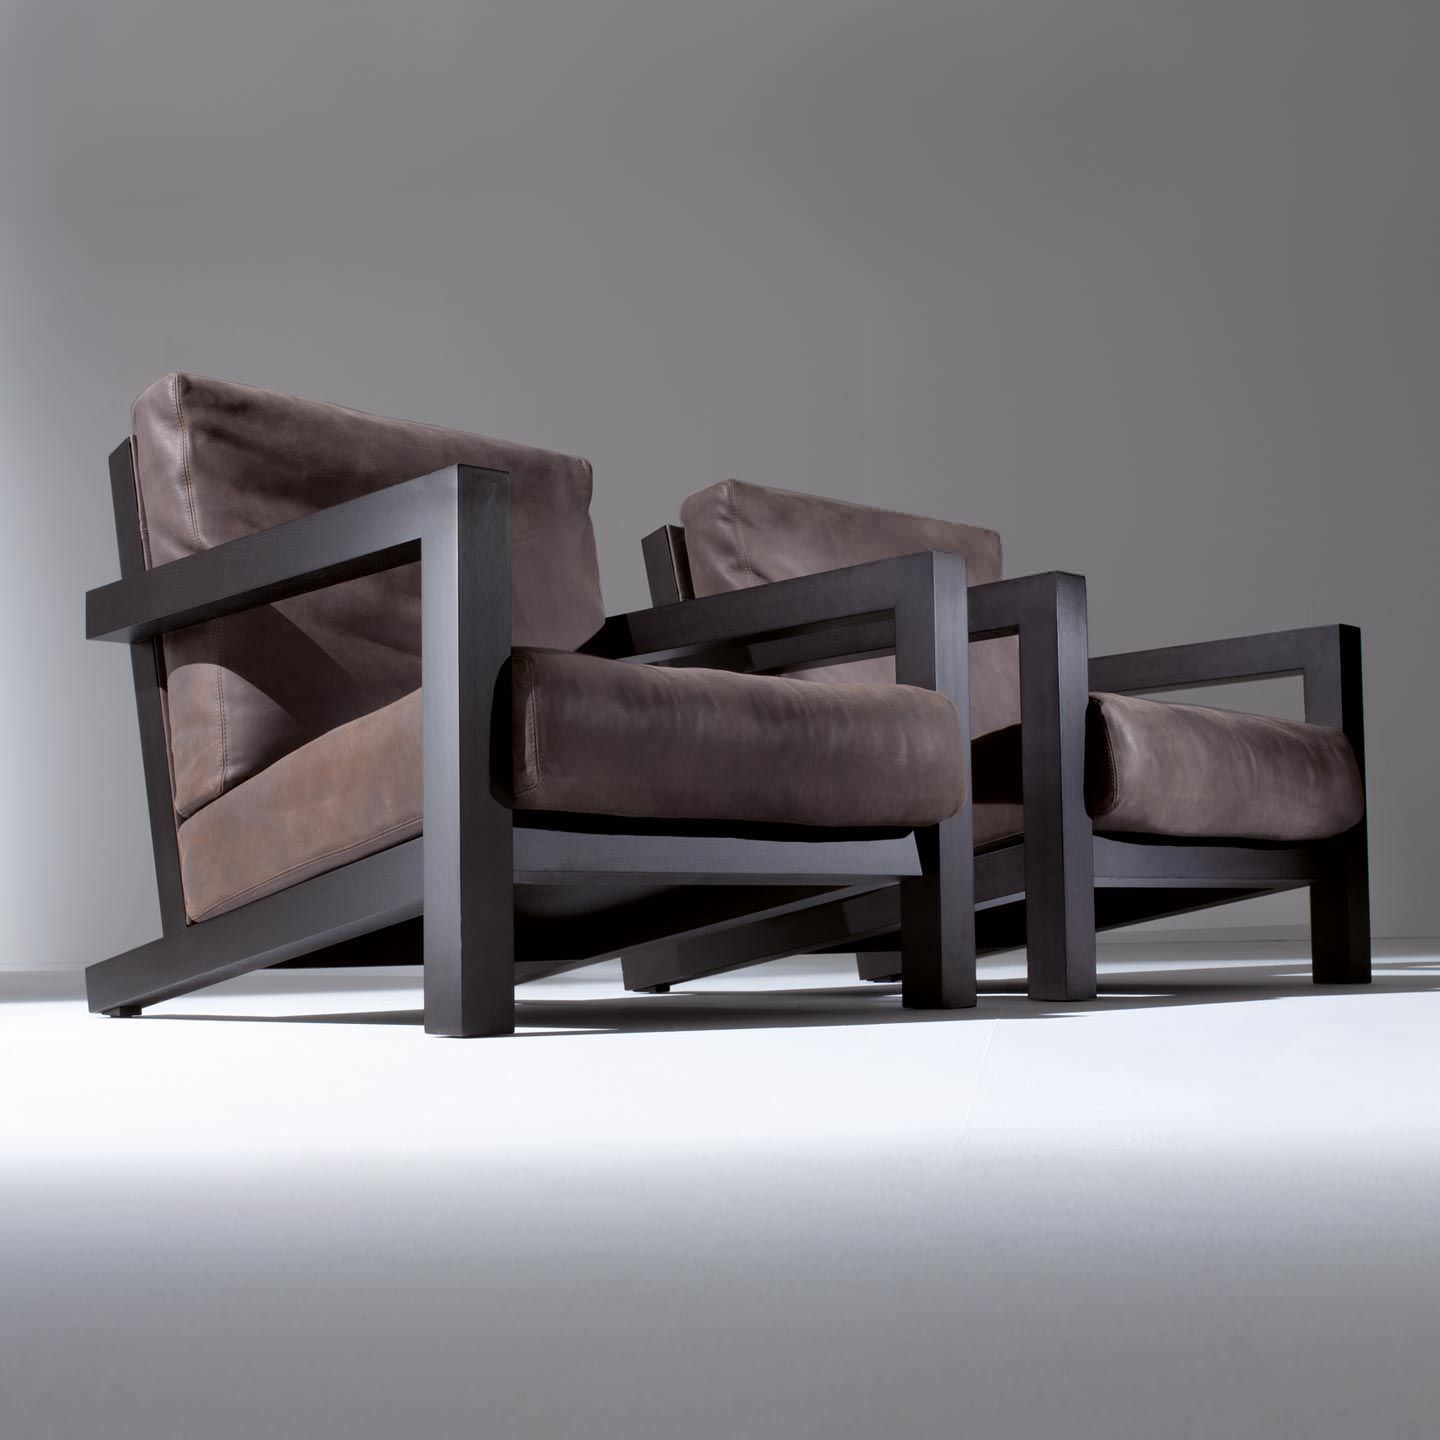 fauteuil cuir bois design id es de d coration int rieure french decor. Black Bedroom Furniture Sets. Home Design Ideas